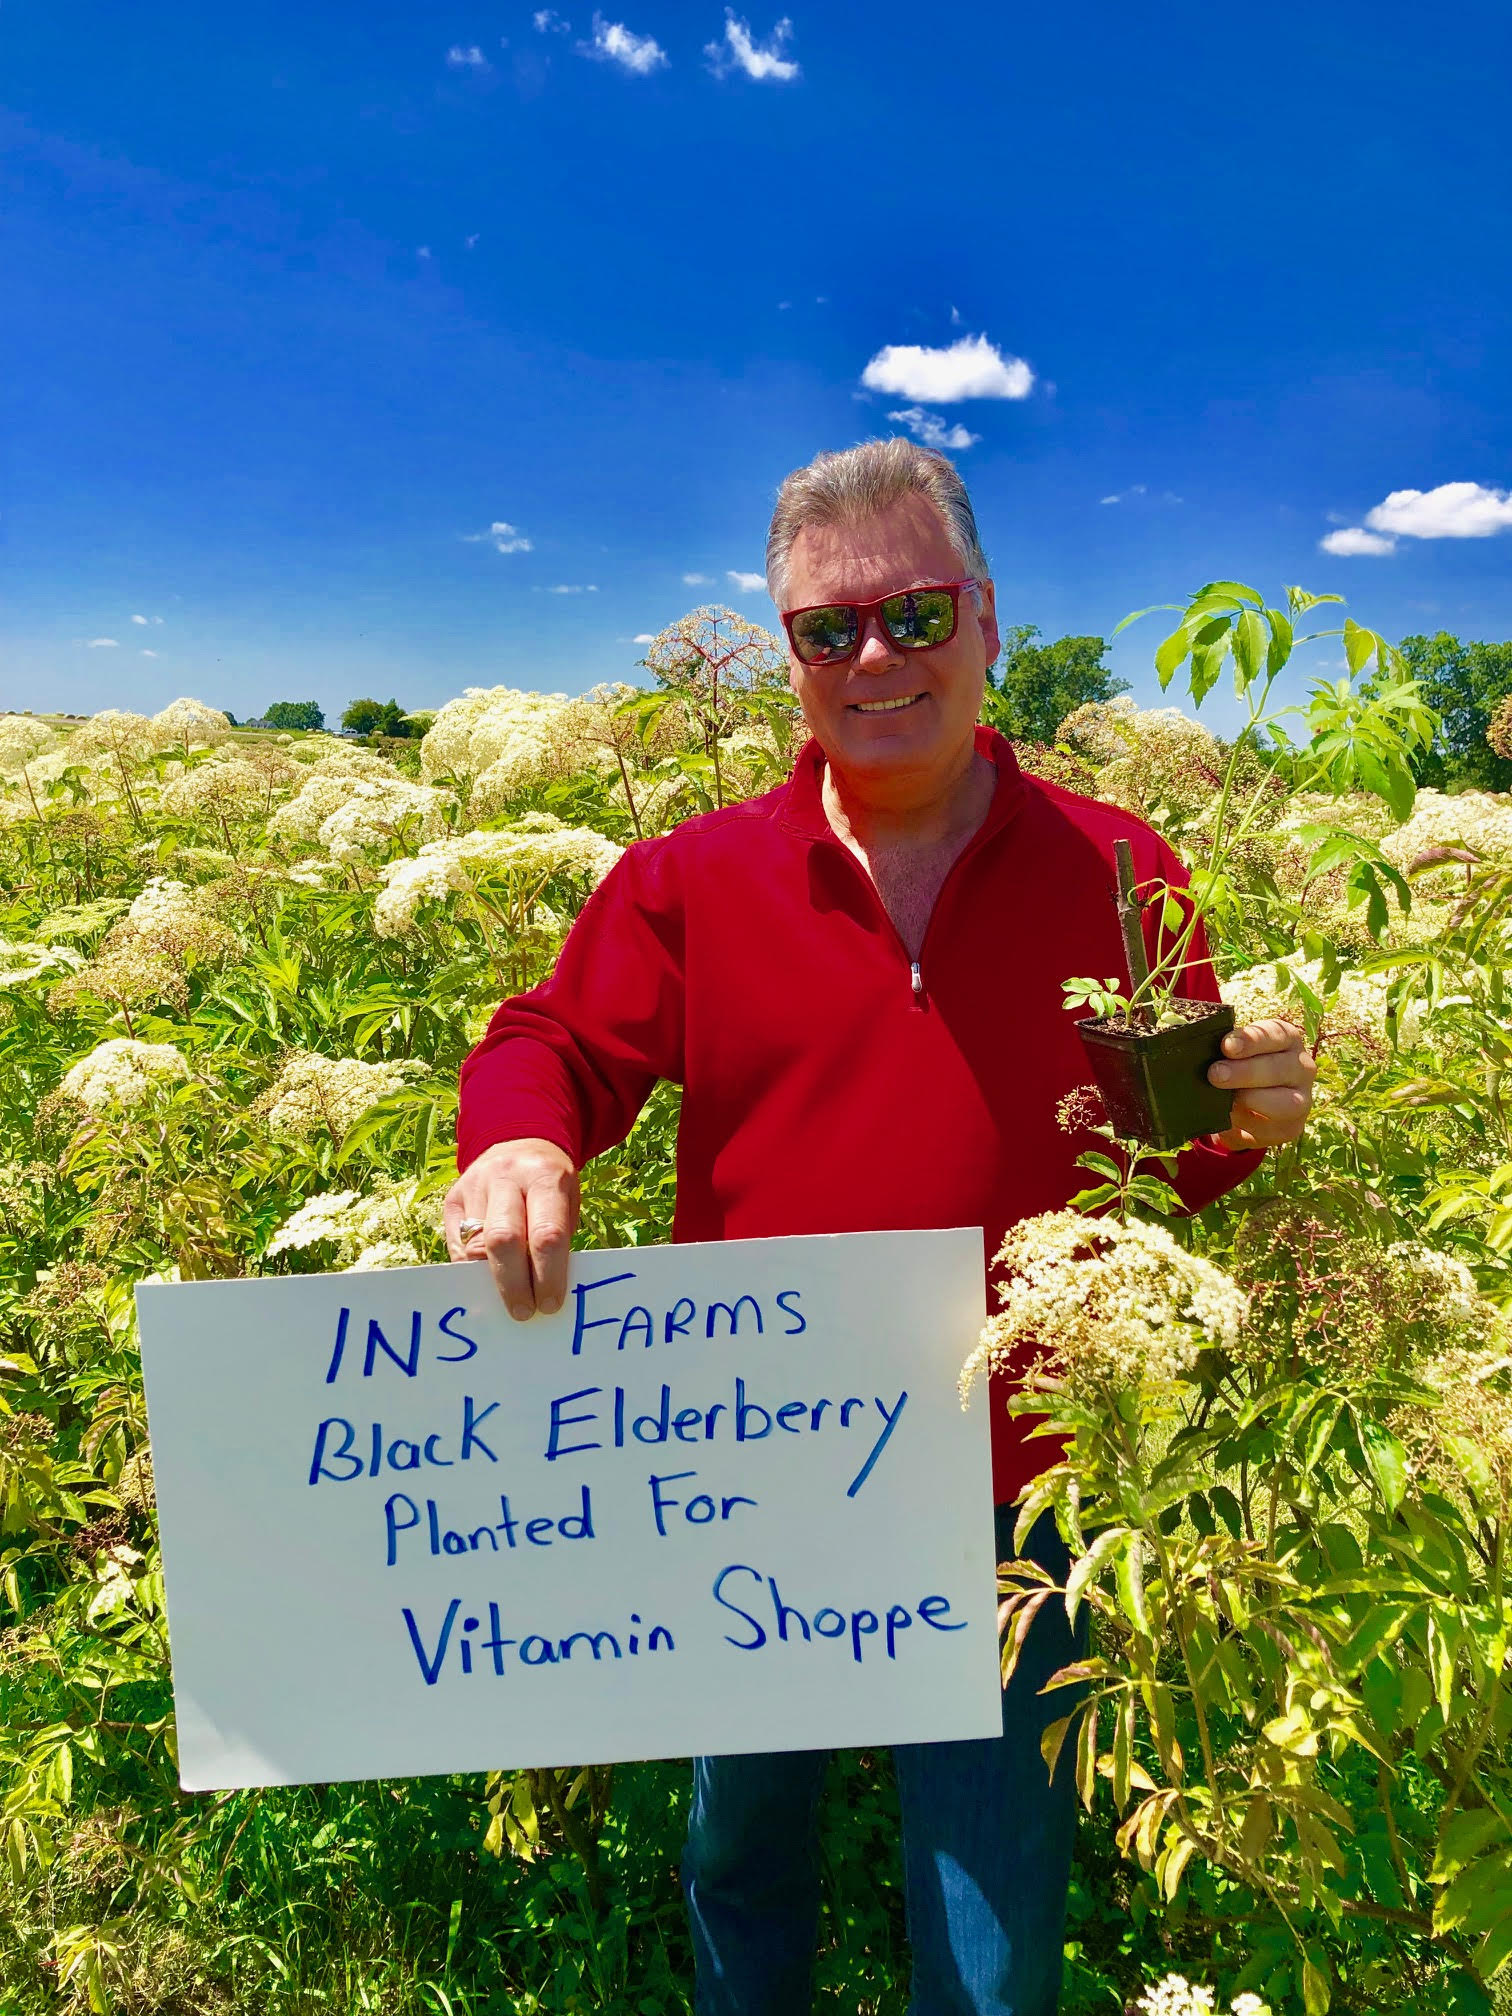 Plant-Elderberry-Vitamin-Shoppe.jpg